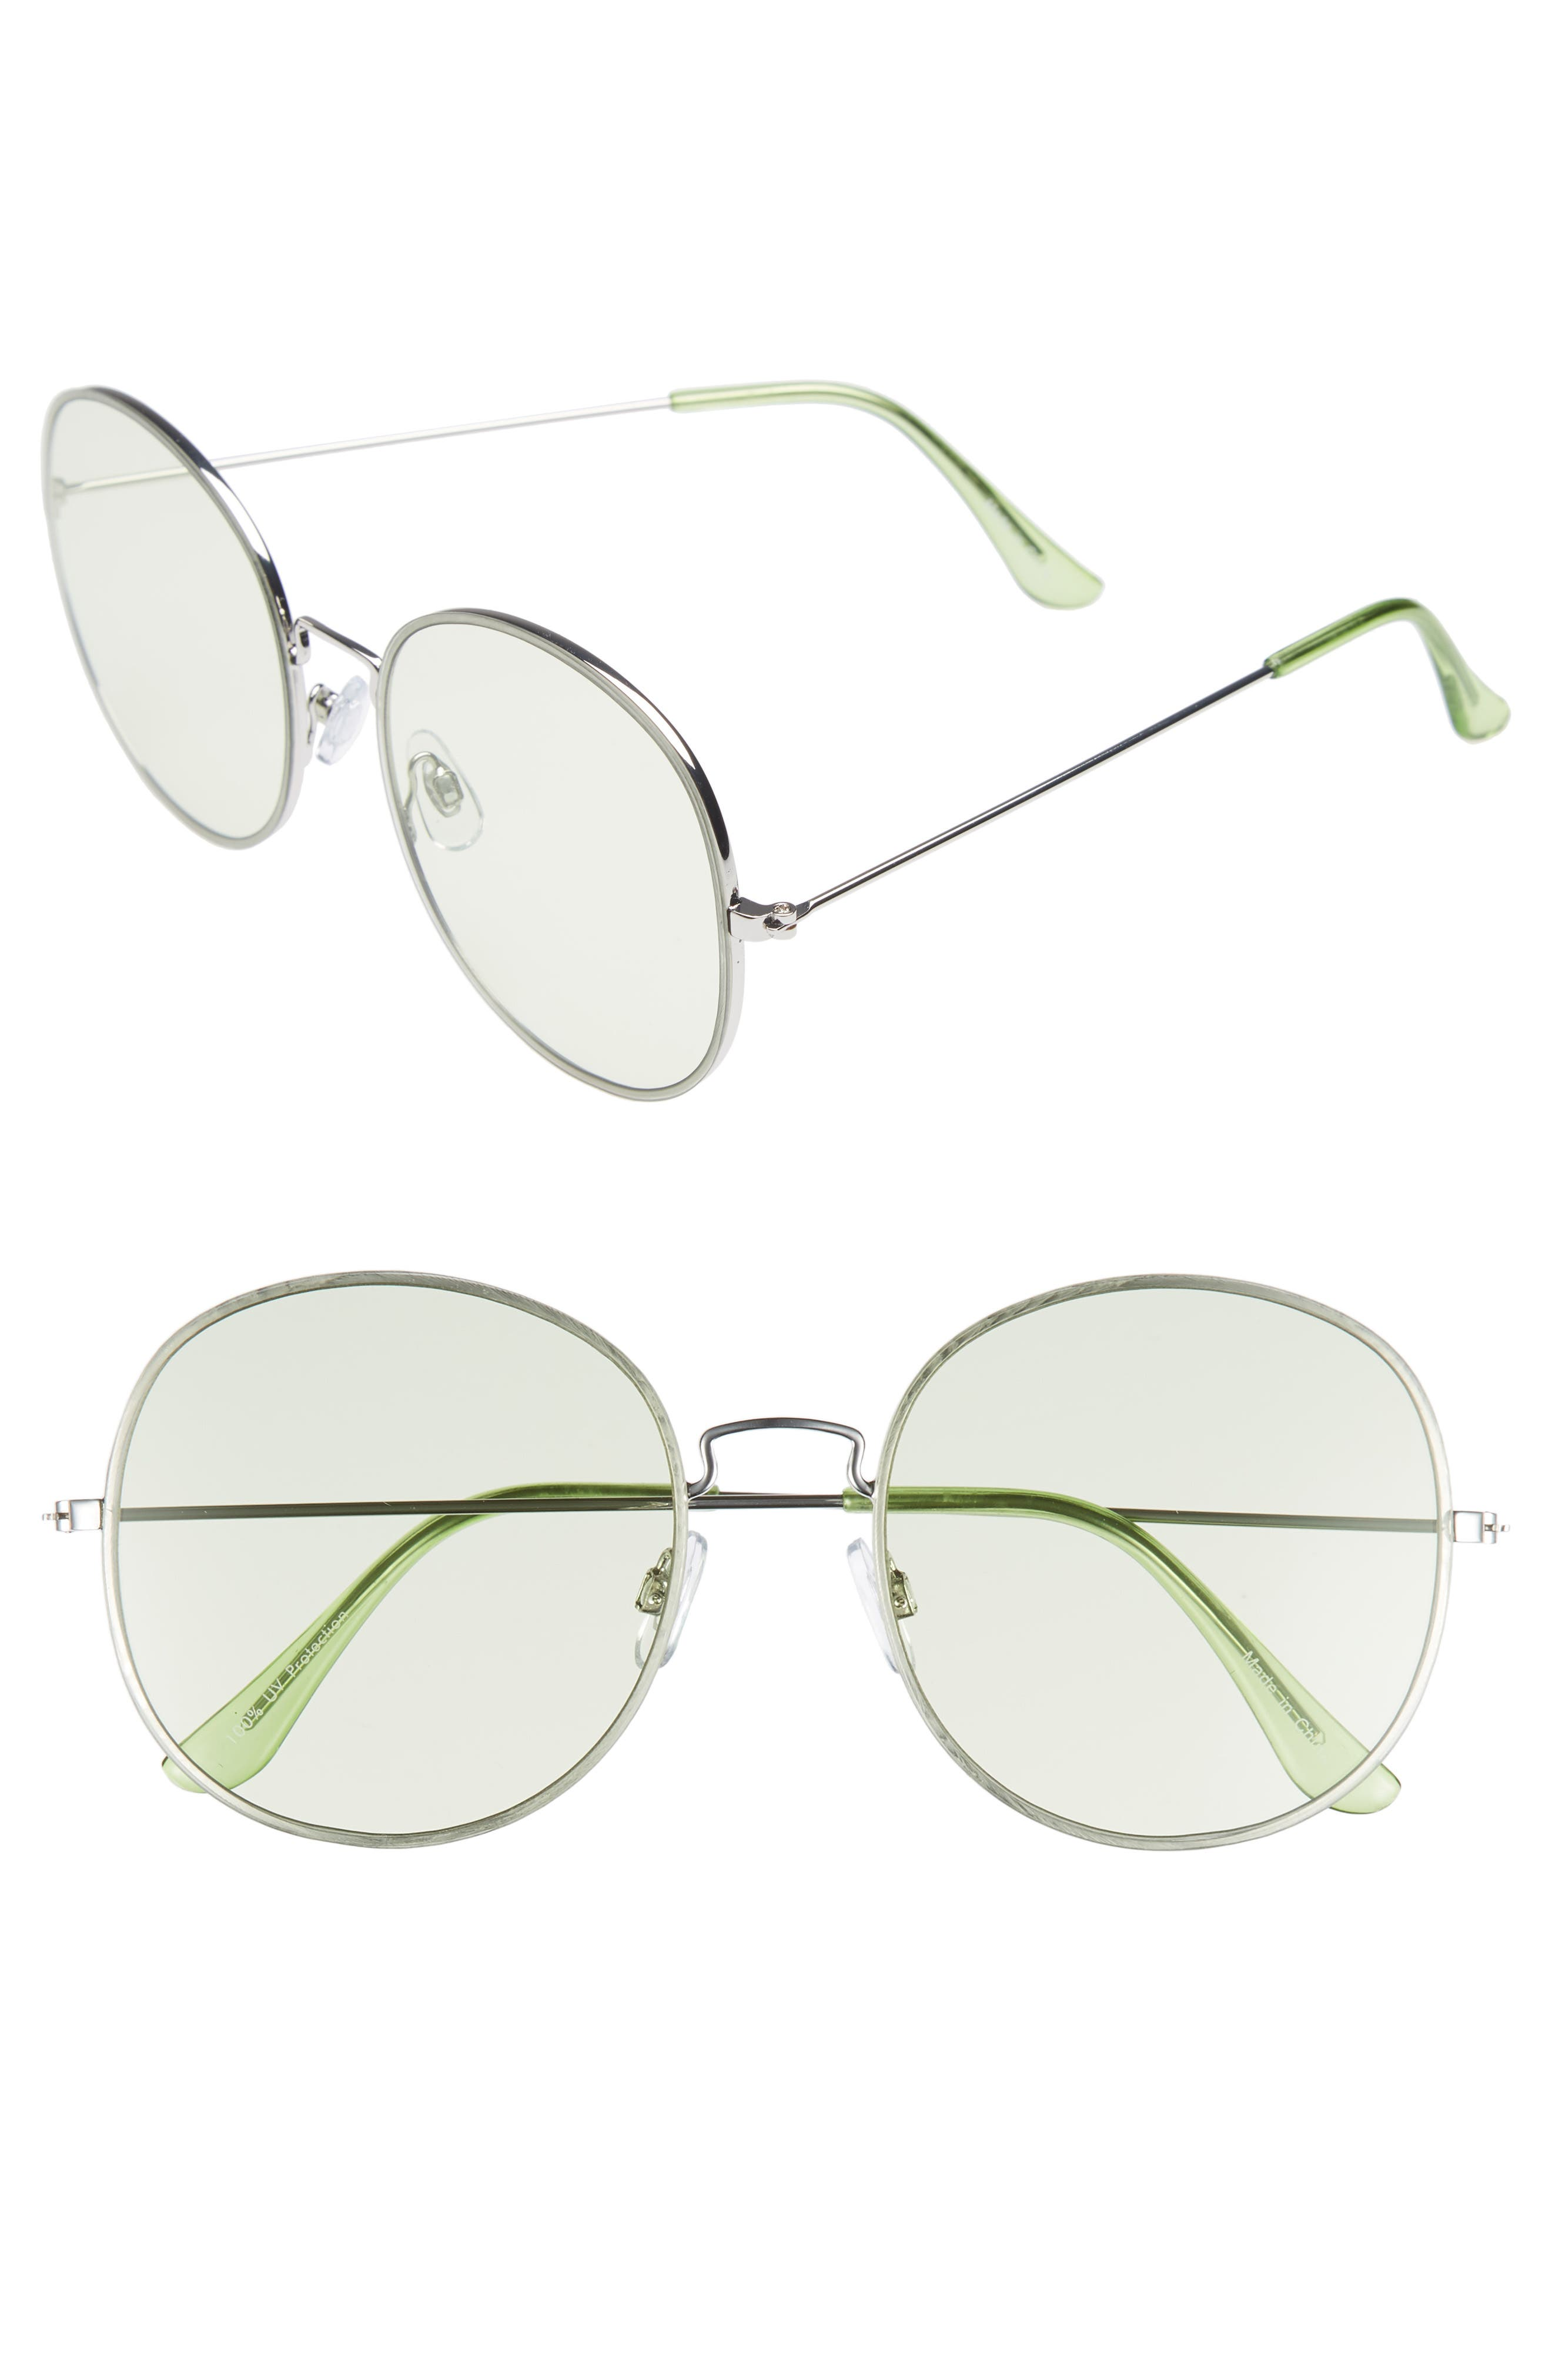 57mm Flat Round Sunglasses,                             Main thumbnail 1, color,                             Green